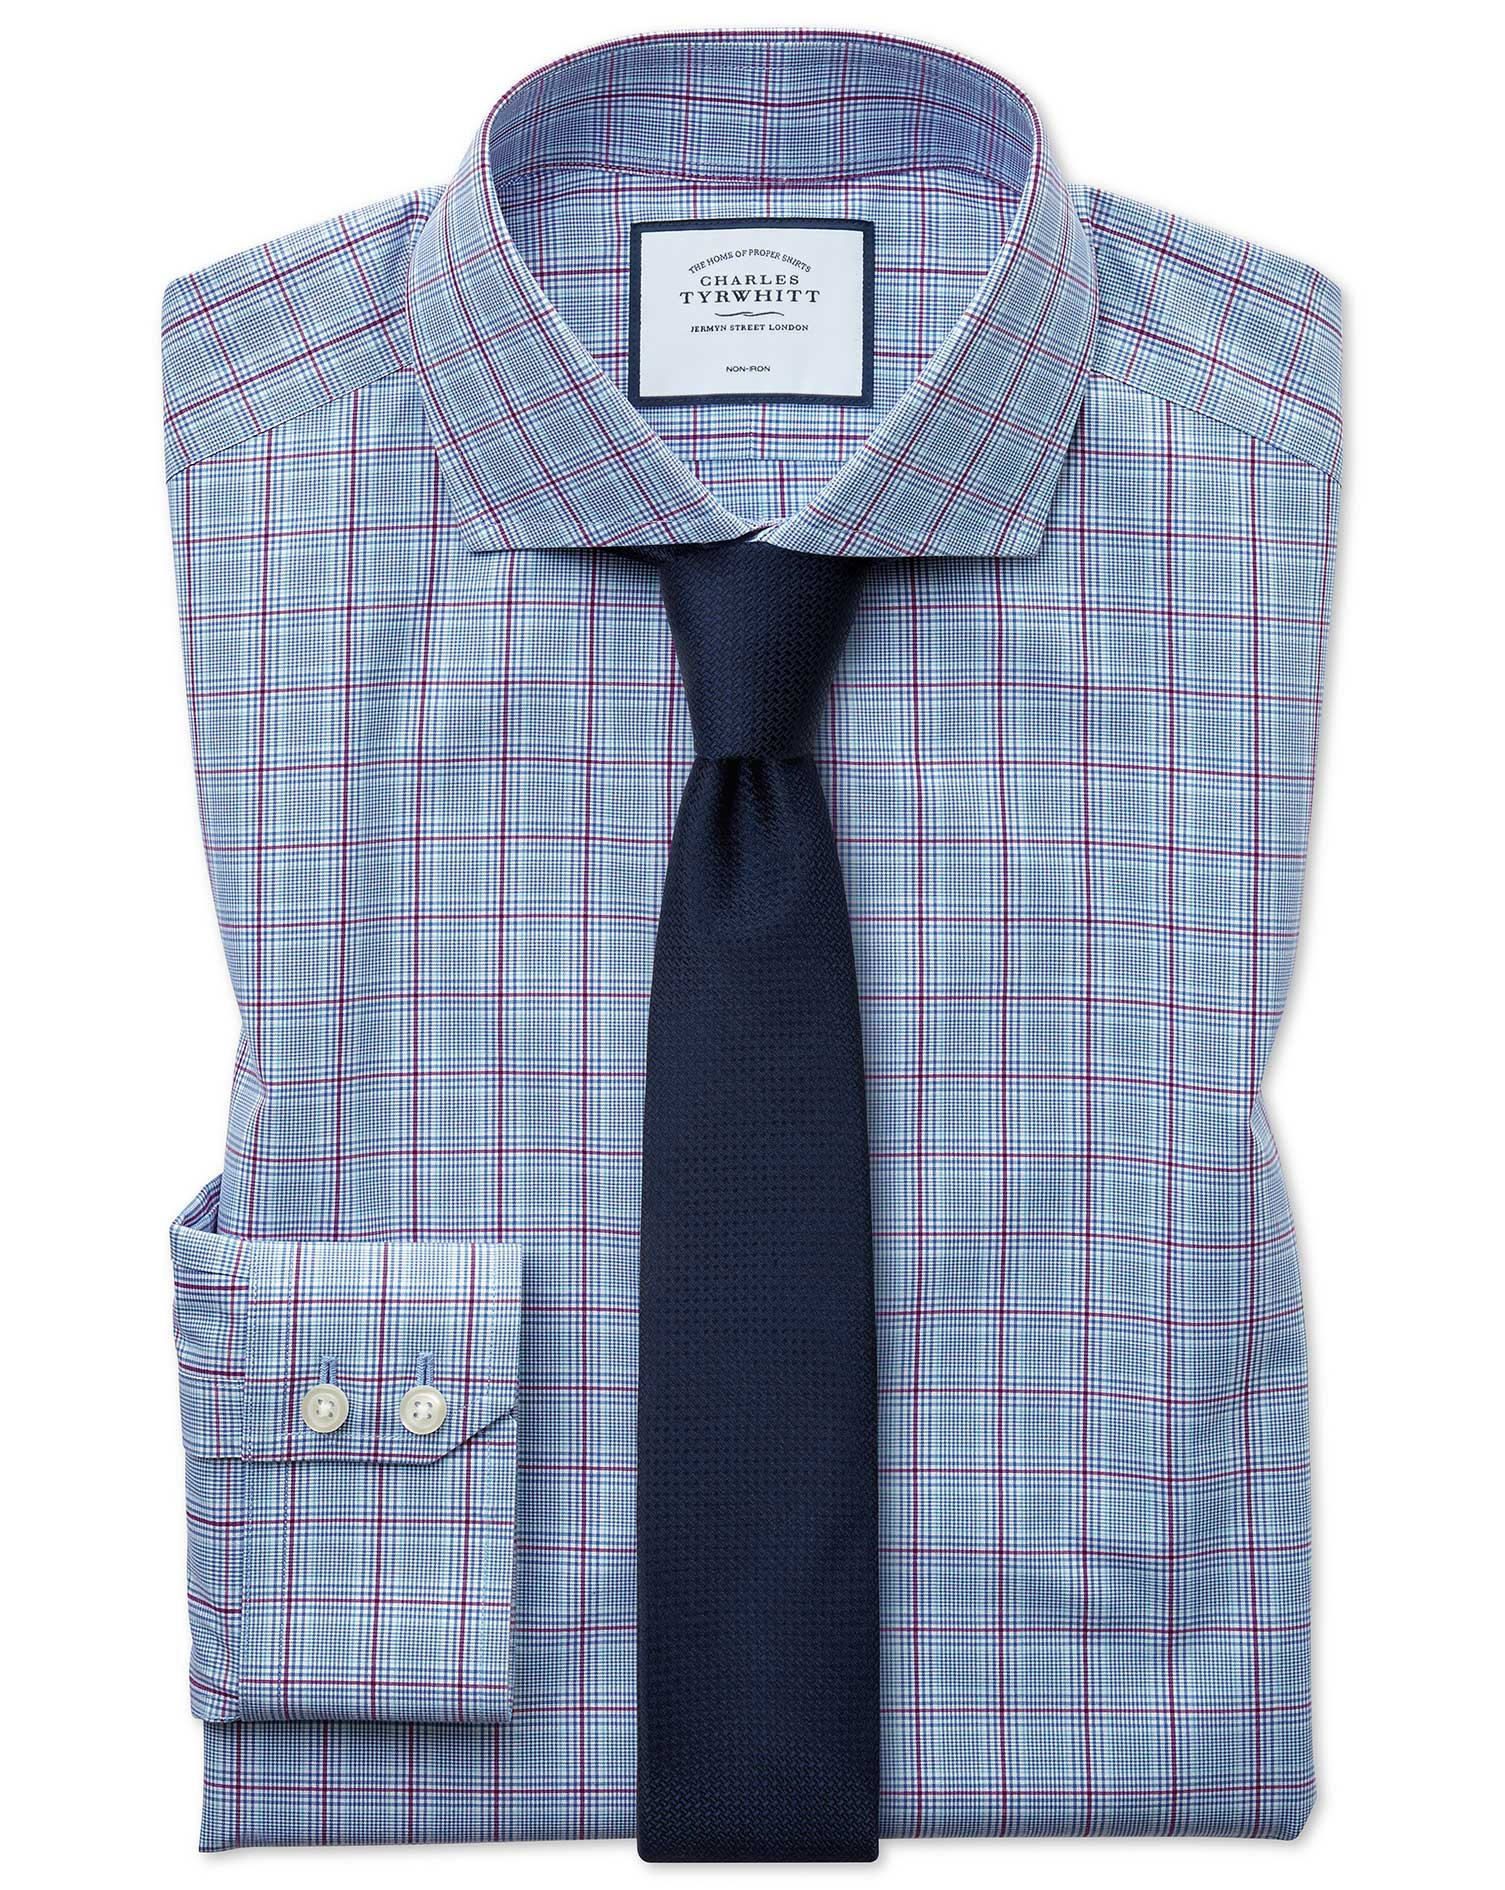 Extra Slim Fit Non-Iron Cutaway Prince Of Wales Check Blue and Purple Cotton Formal Shirt Double Cuf